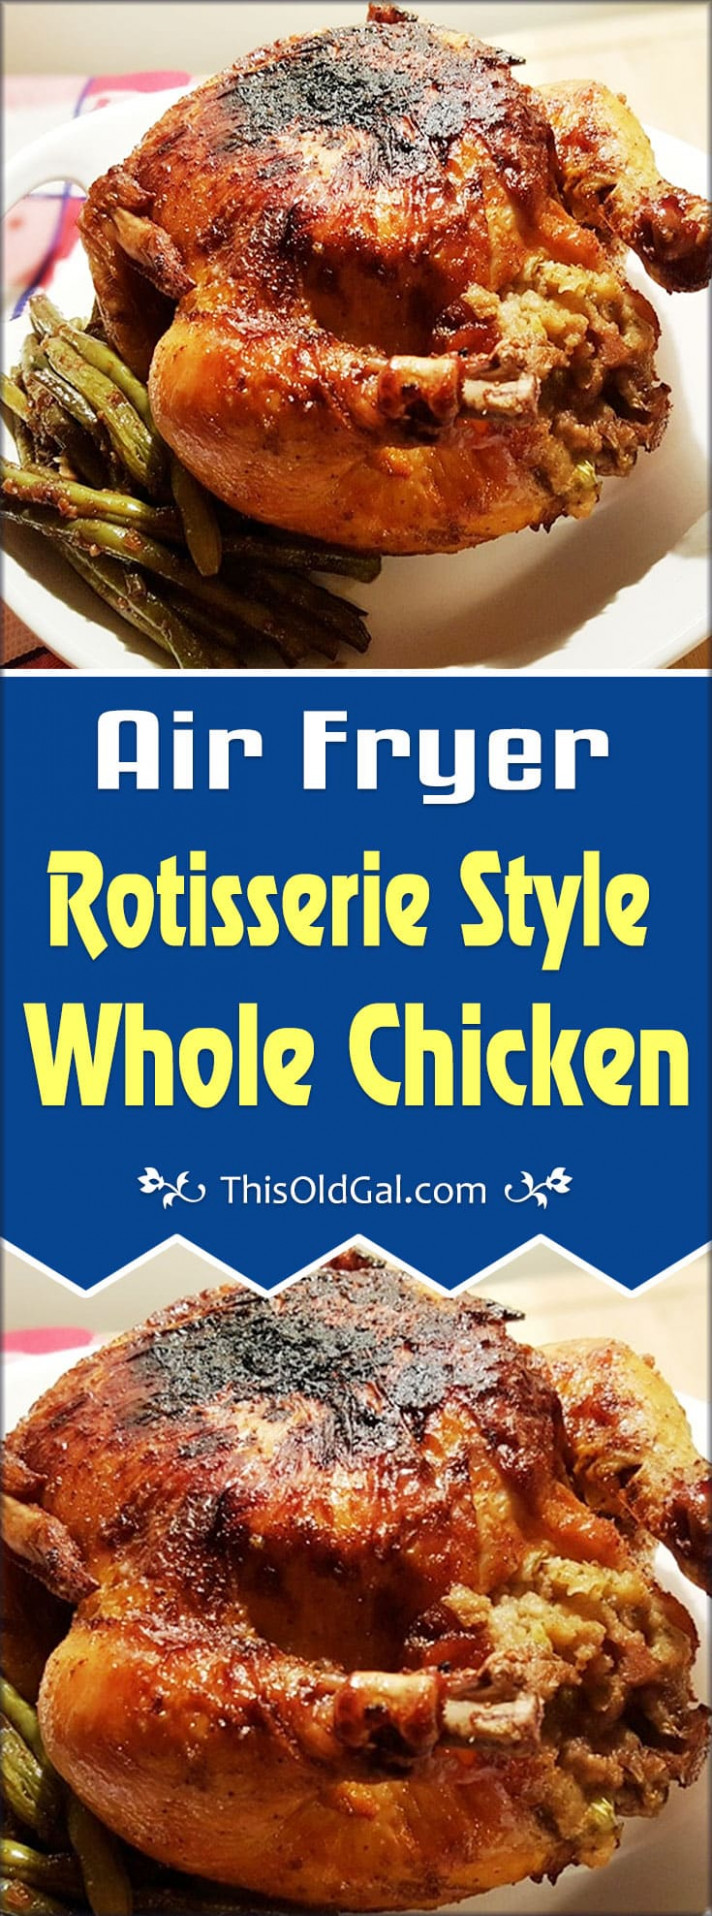 Air Fryer Rotisserie Chicken | This Old Gal - recipes air fryer chicken